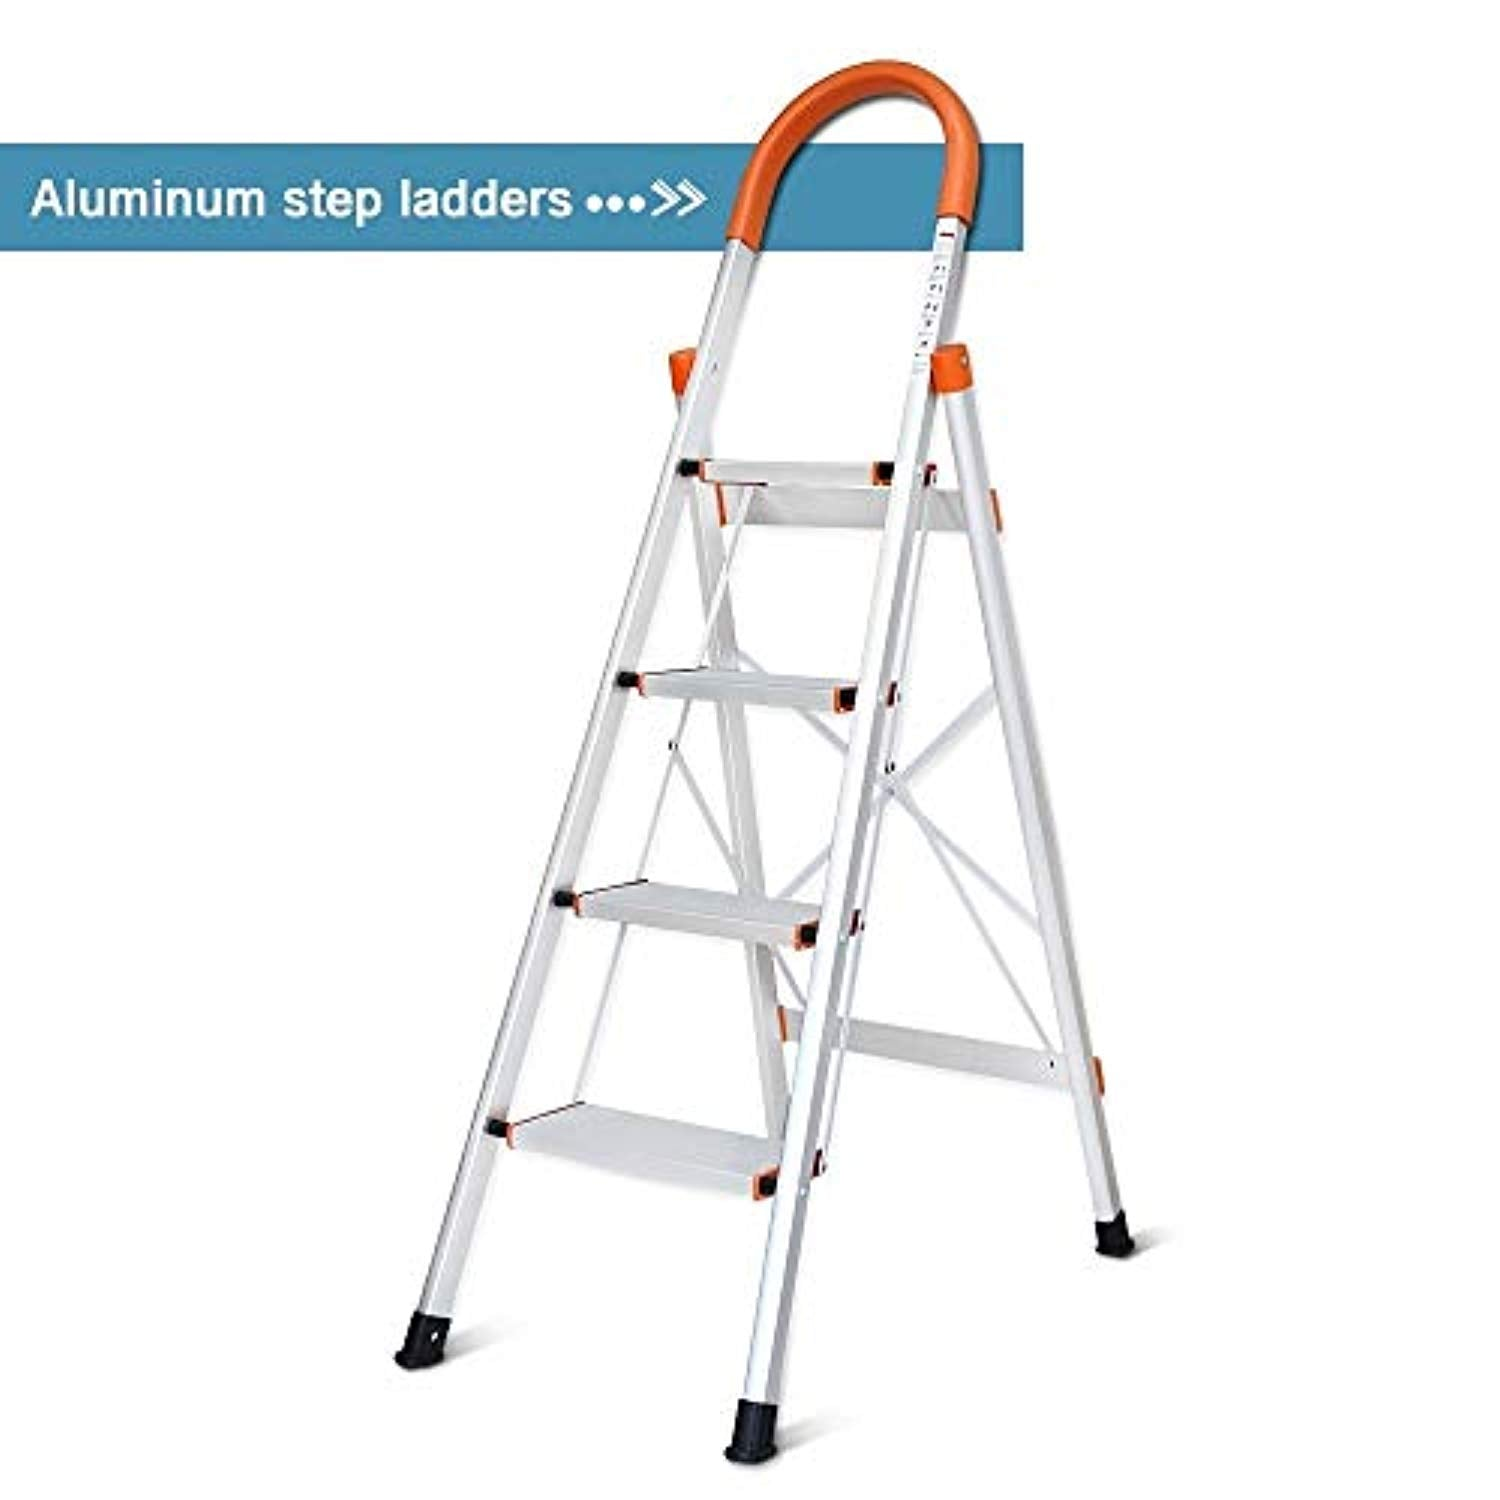 Swell Dgcus Lightweight Aluminum 4 Step Ladder Folding Step Stool 5 Foot Stepladders Home And Kitchen Anti Slip Sturdy And Wide Pedal Ladders 300Lbs Pabps2019 Chair Design Images Pabps2019Com